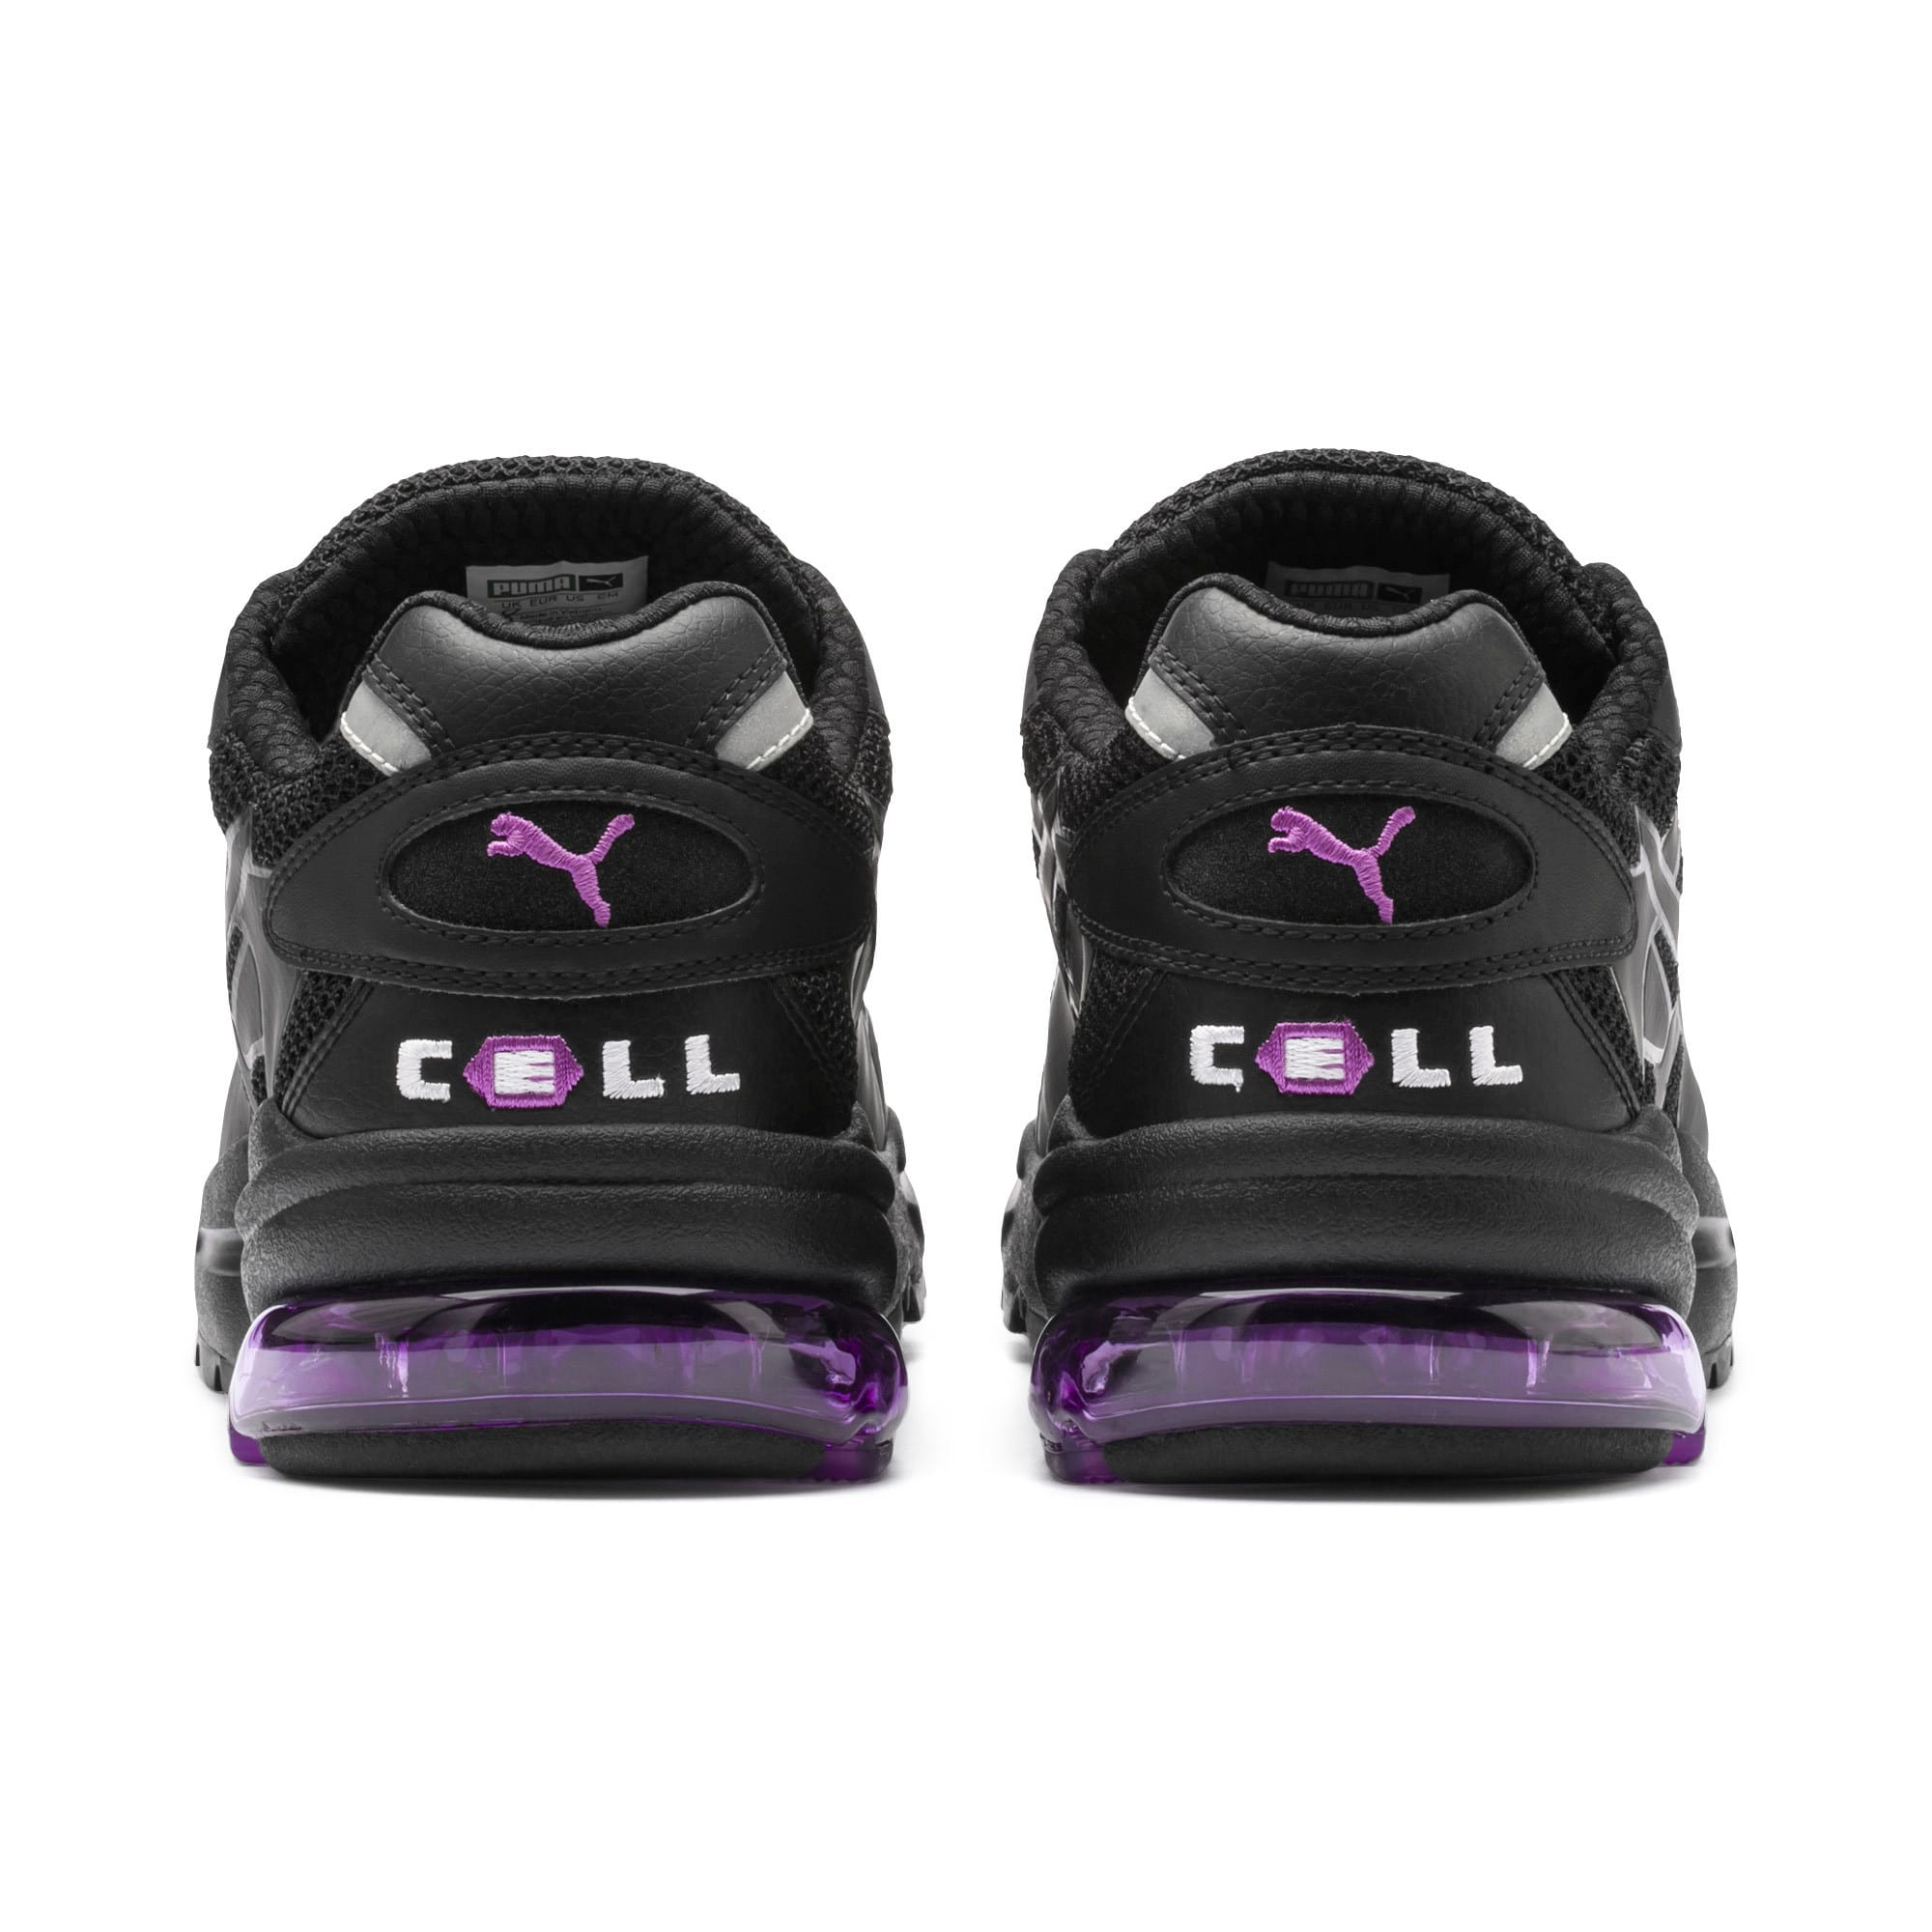 Thumbnail 4 of CELL Alien Kotto sportschoenen, Puma Black-Puma Black, medium